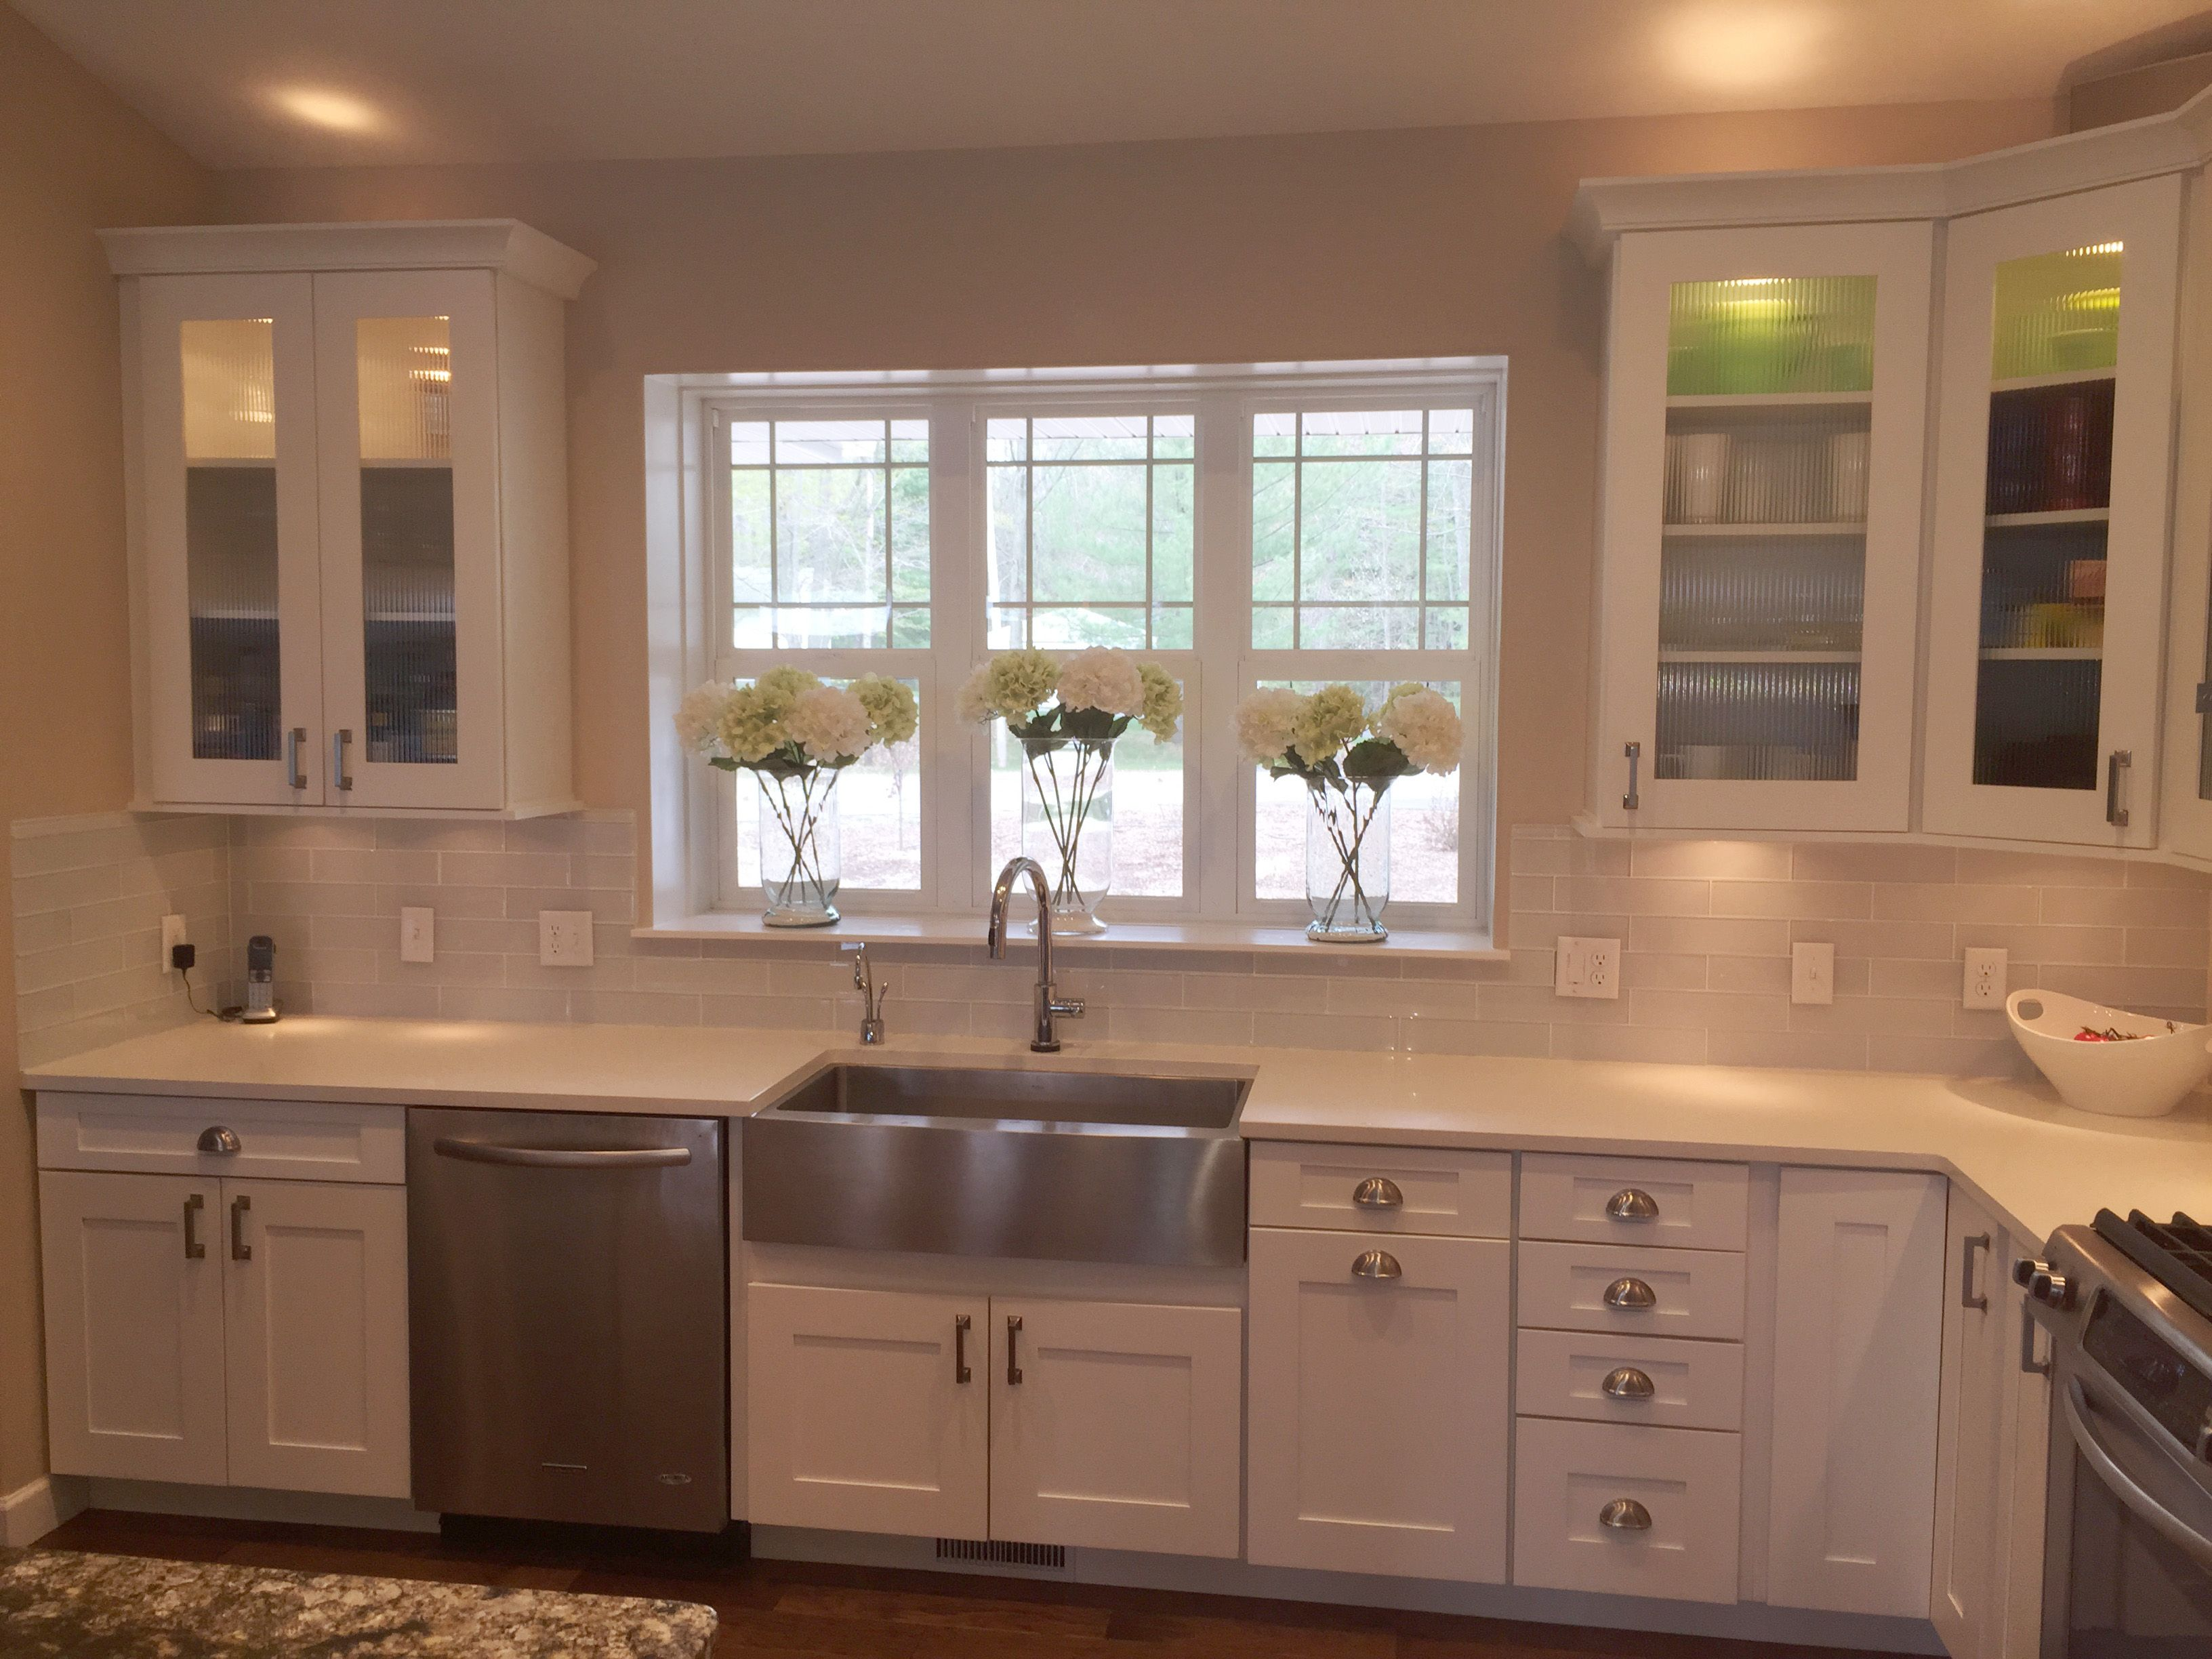 Hickory Shaker Style Kitchen Cabinets Renovated Ideas White With Hardware